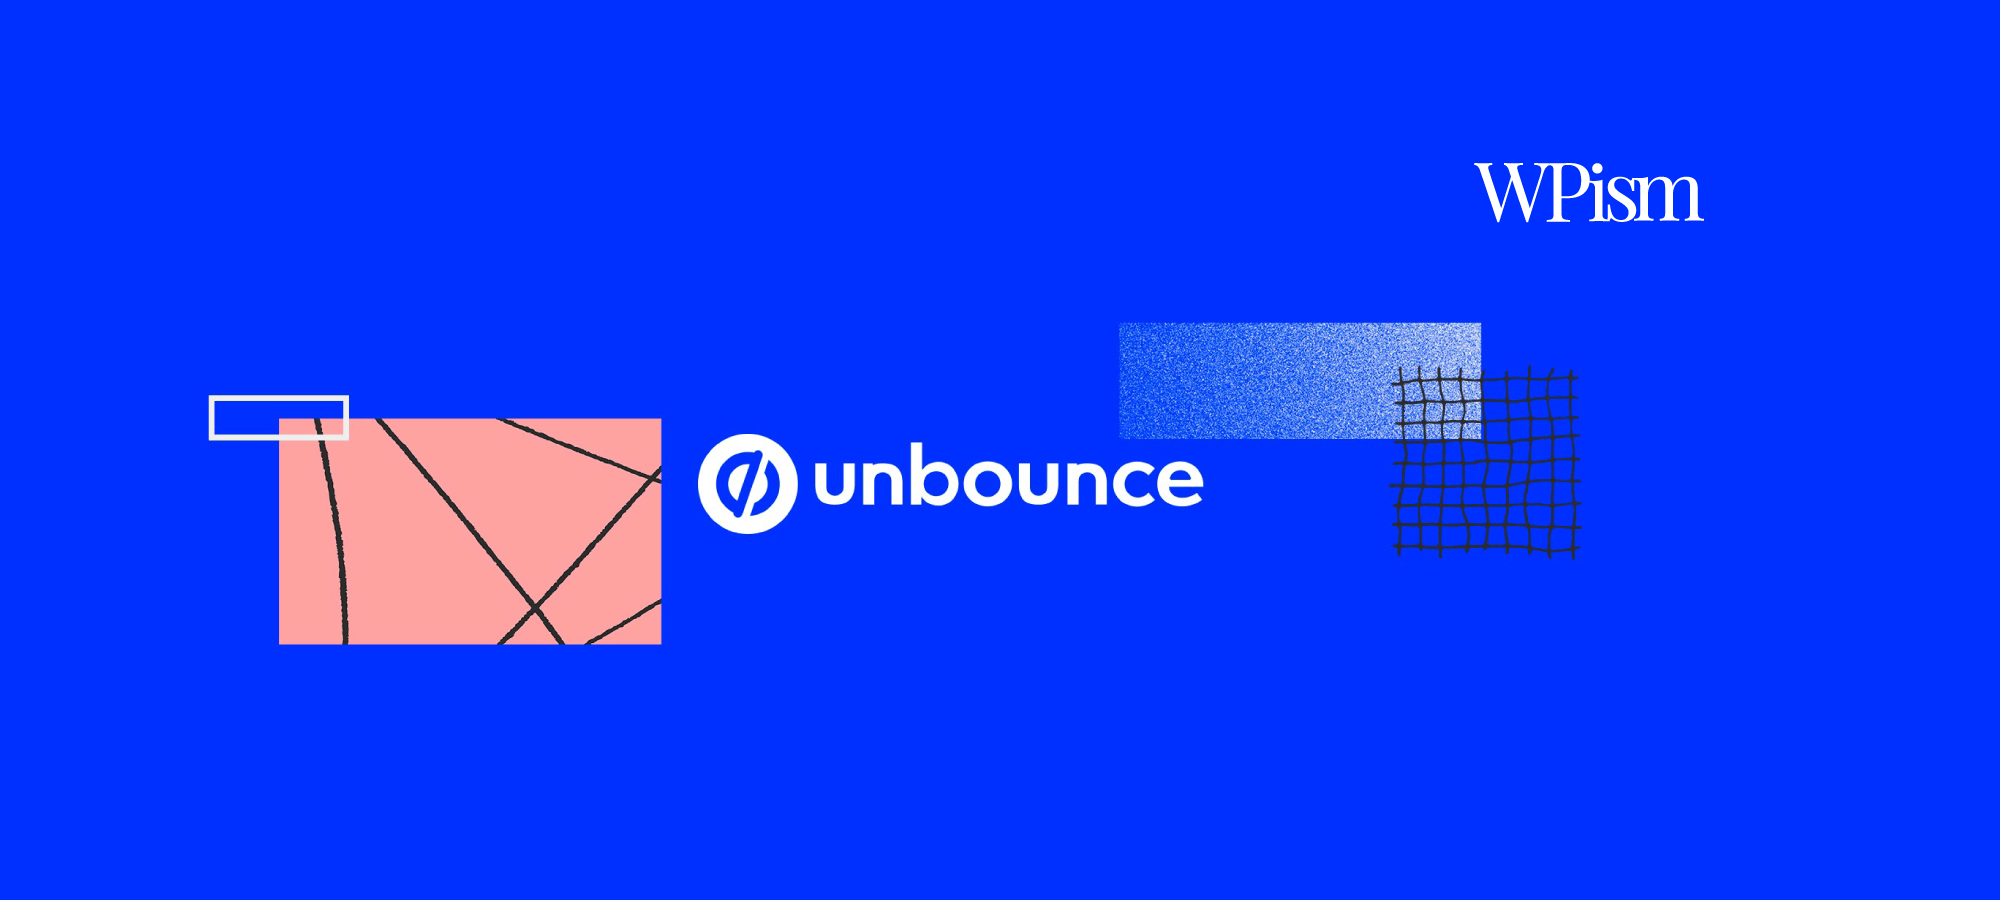 Unbounce Coupon Code | 2020 Deal | 20% OFF + Discounts